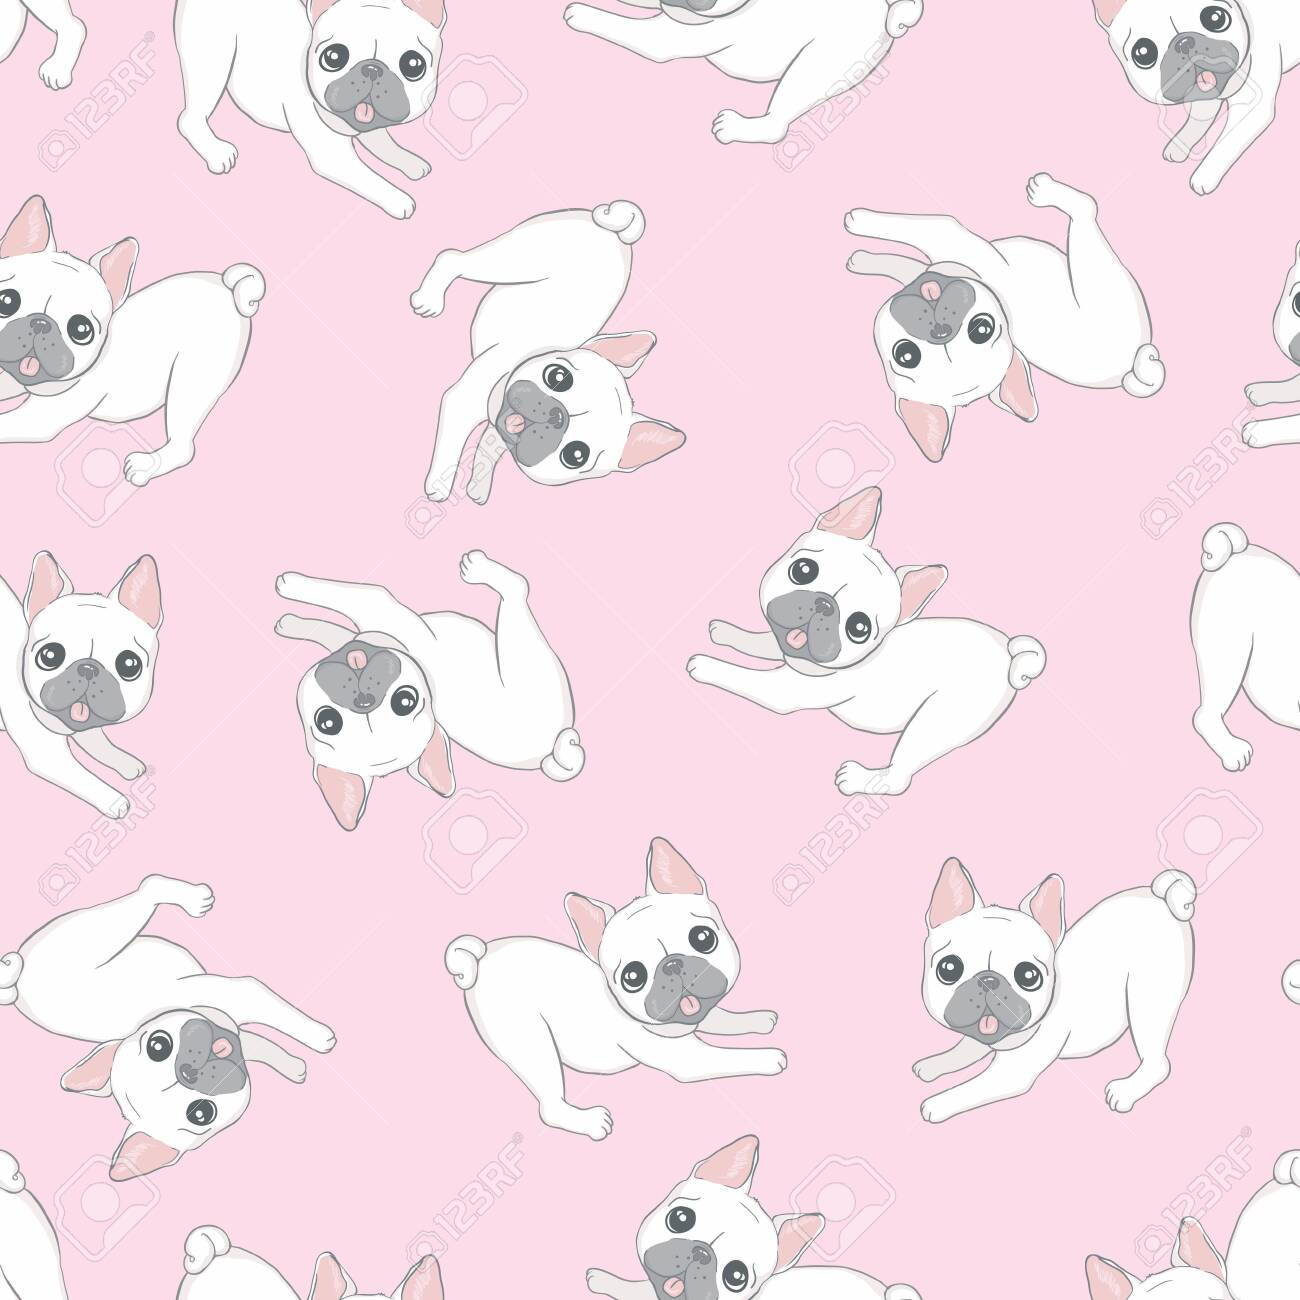 Seamless pattern with cute dogs. Background for fabric, textile design, wrapping paper or wallpaper. French bulldog - 143869707